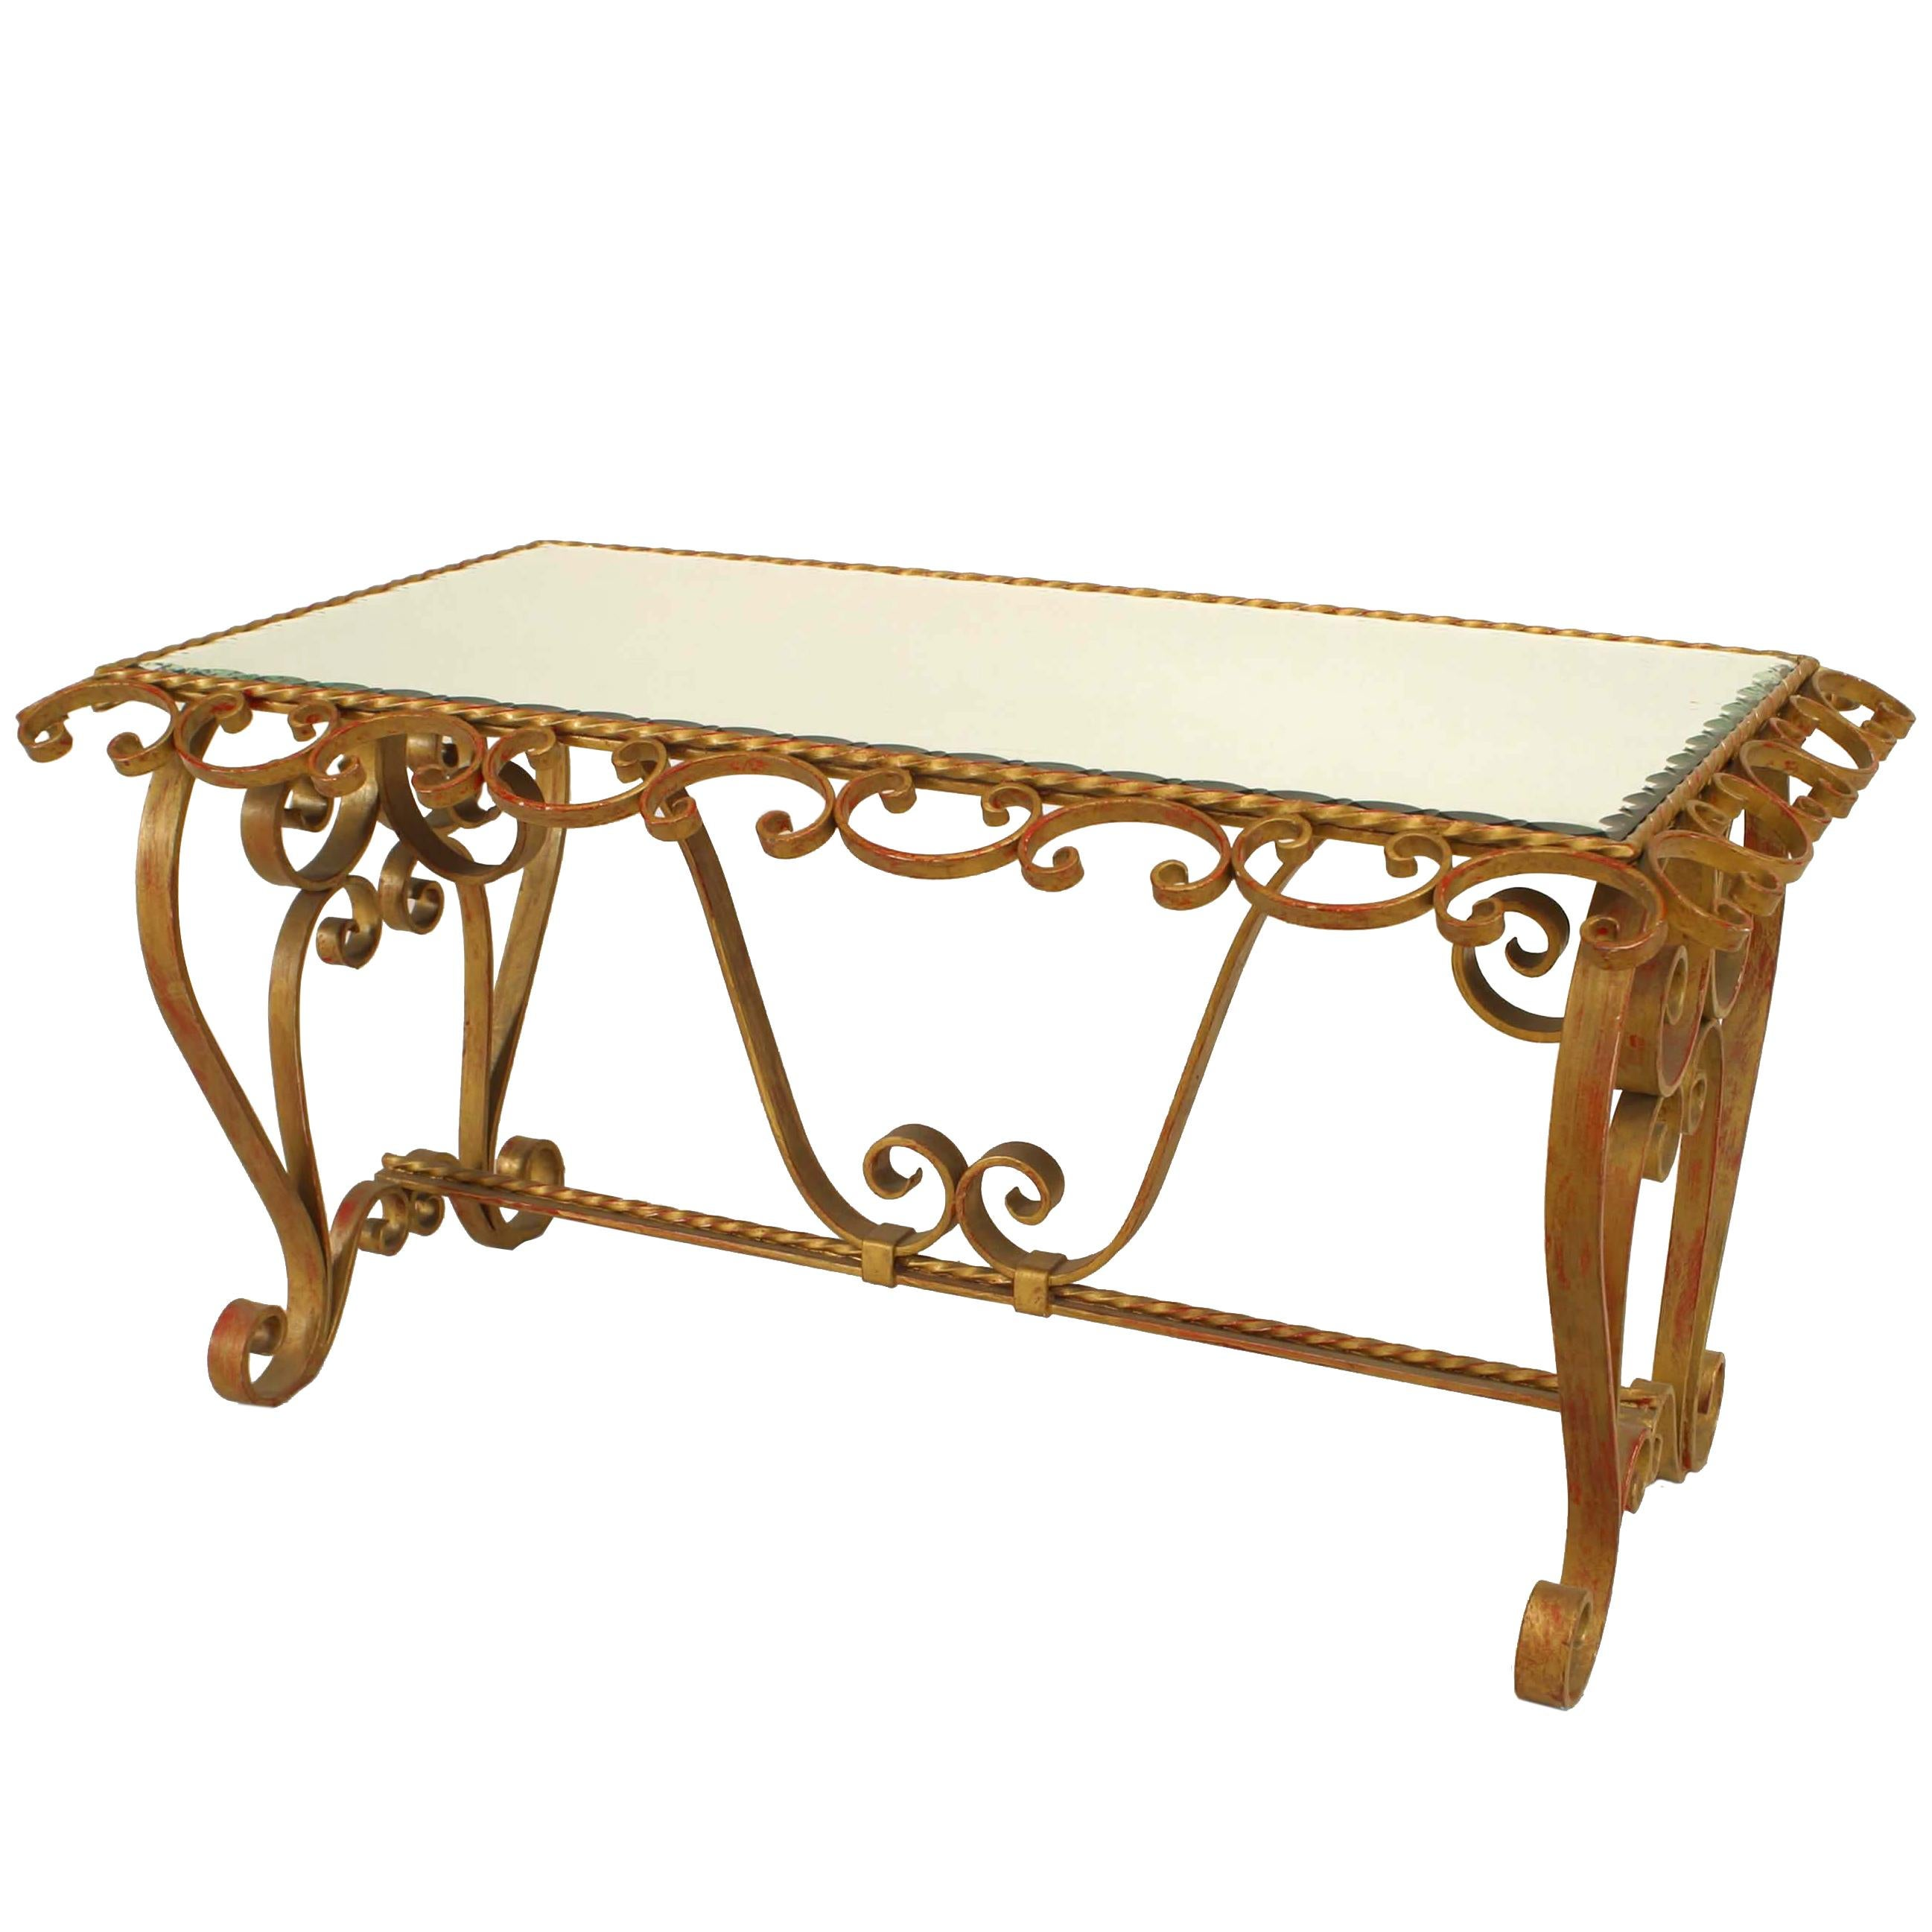 1930s Italian Renaissance Style Gilt Wrought Iron And Gl Coffee Table